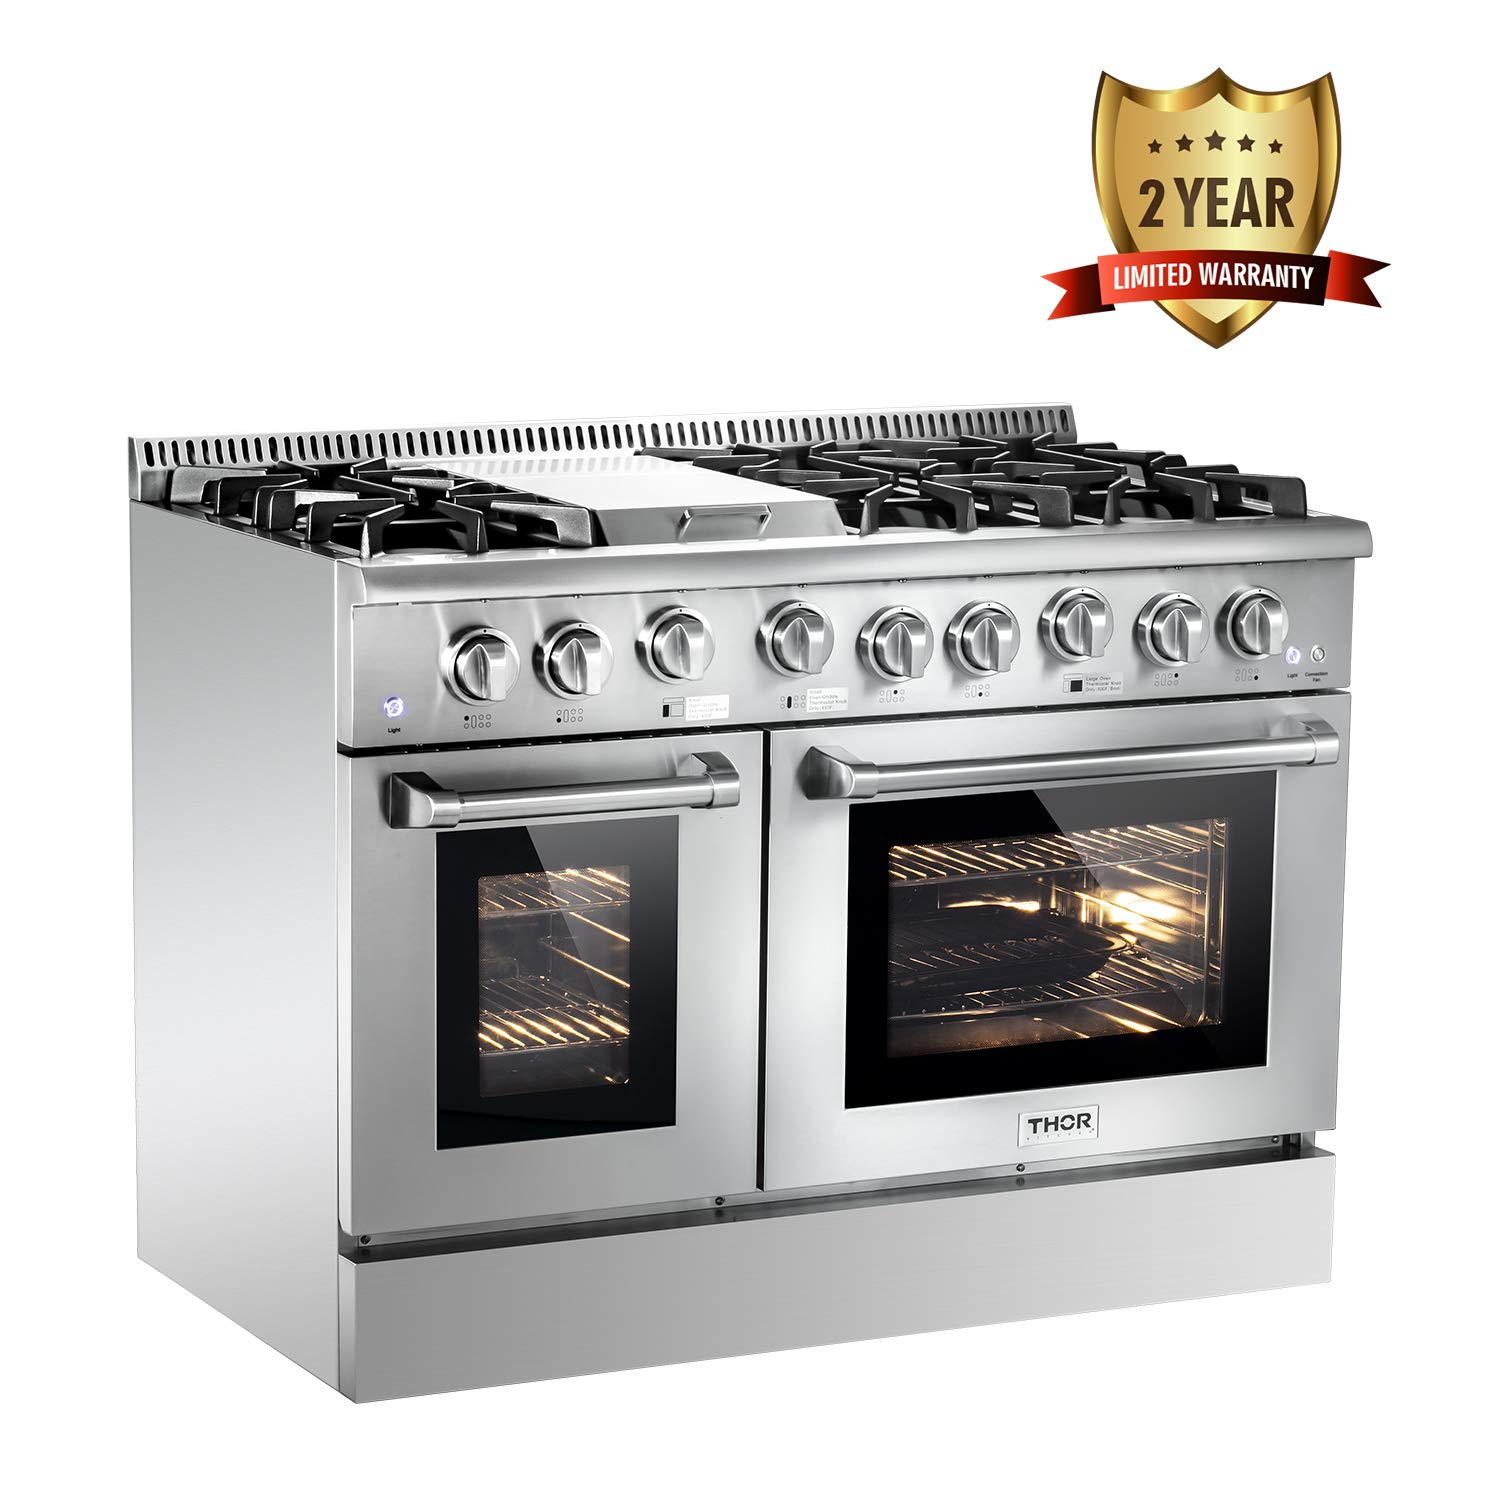 Thor Kitchen Silver 48'' Gas Range Cooktop with 6.7 cu.ft Double Convection Oven and Stainless Steel Griddle Burner - 6 Burners - 2-Years-Warranty - With LP Conversion Kit